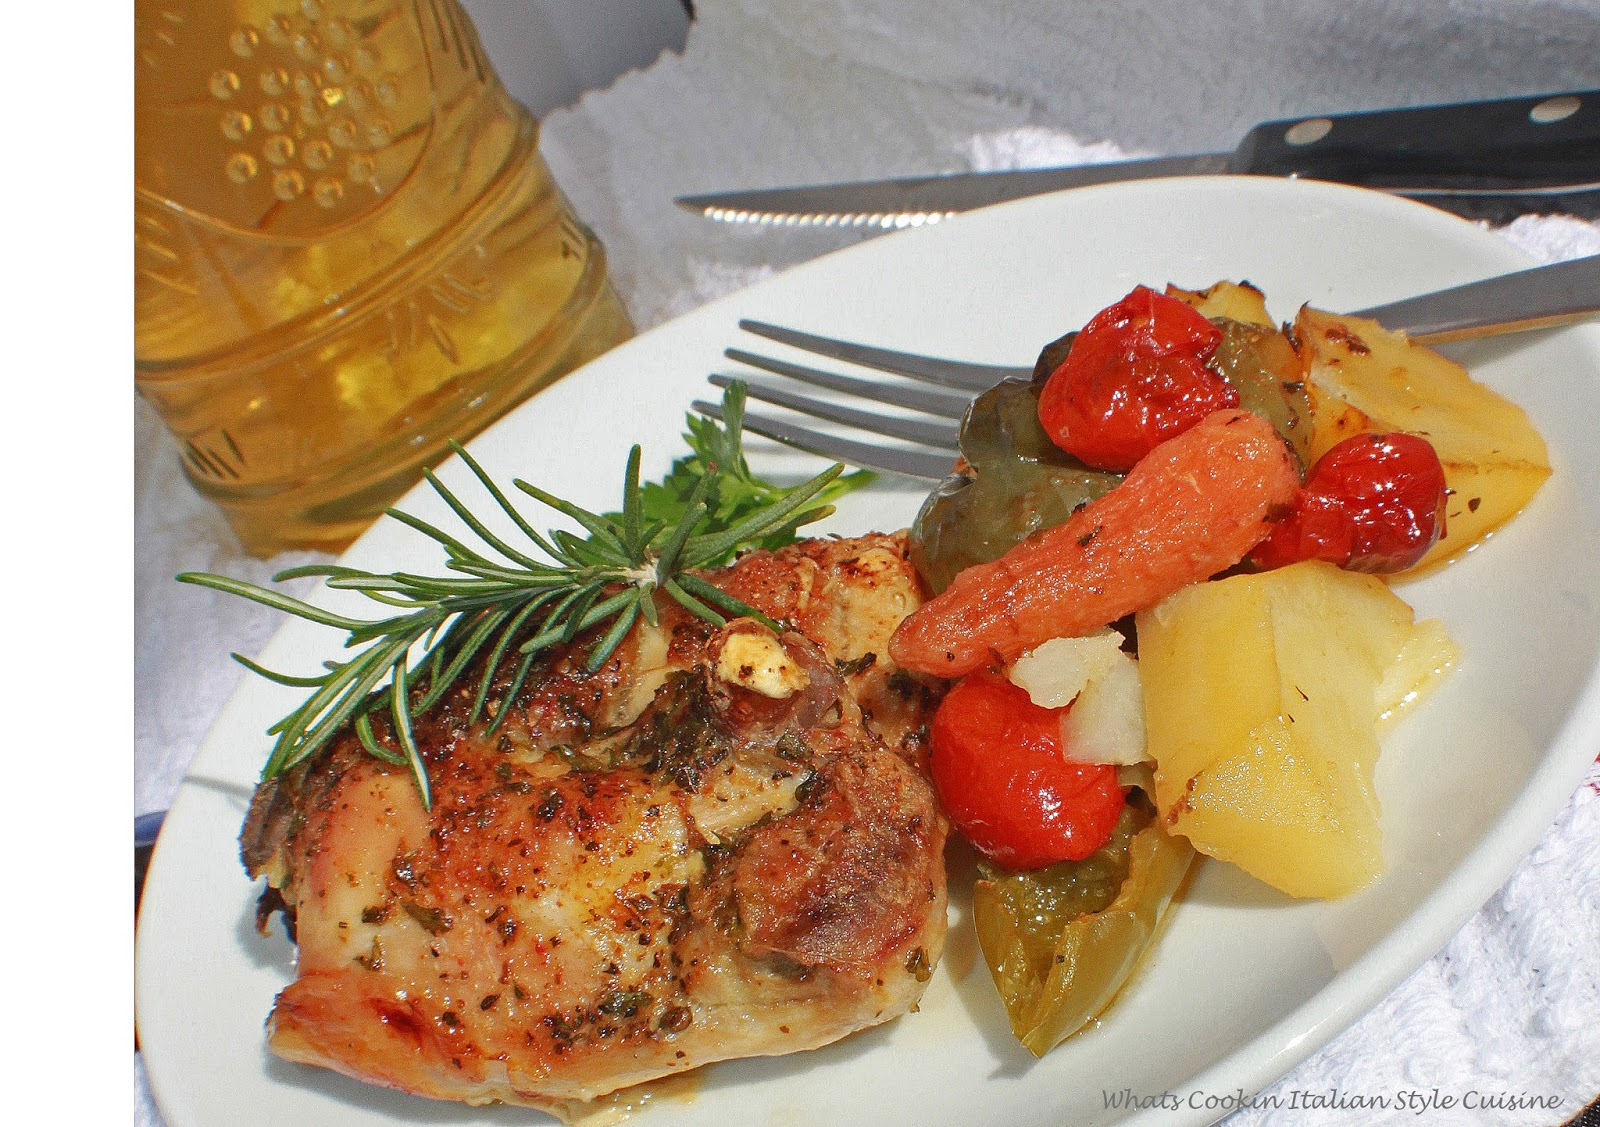 Italian chicken with potatoes, carrots, peppers and tomatoes